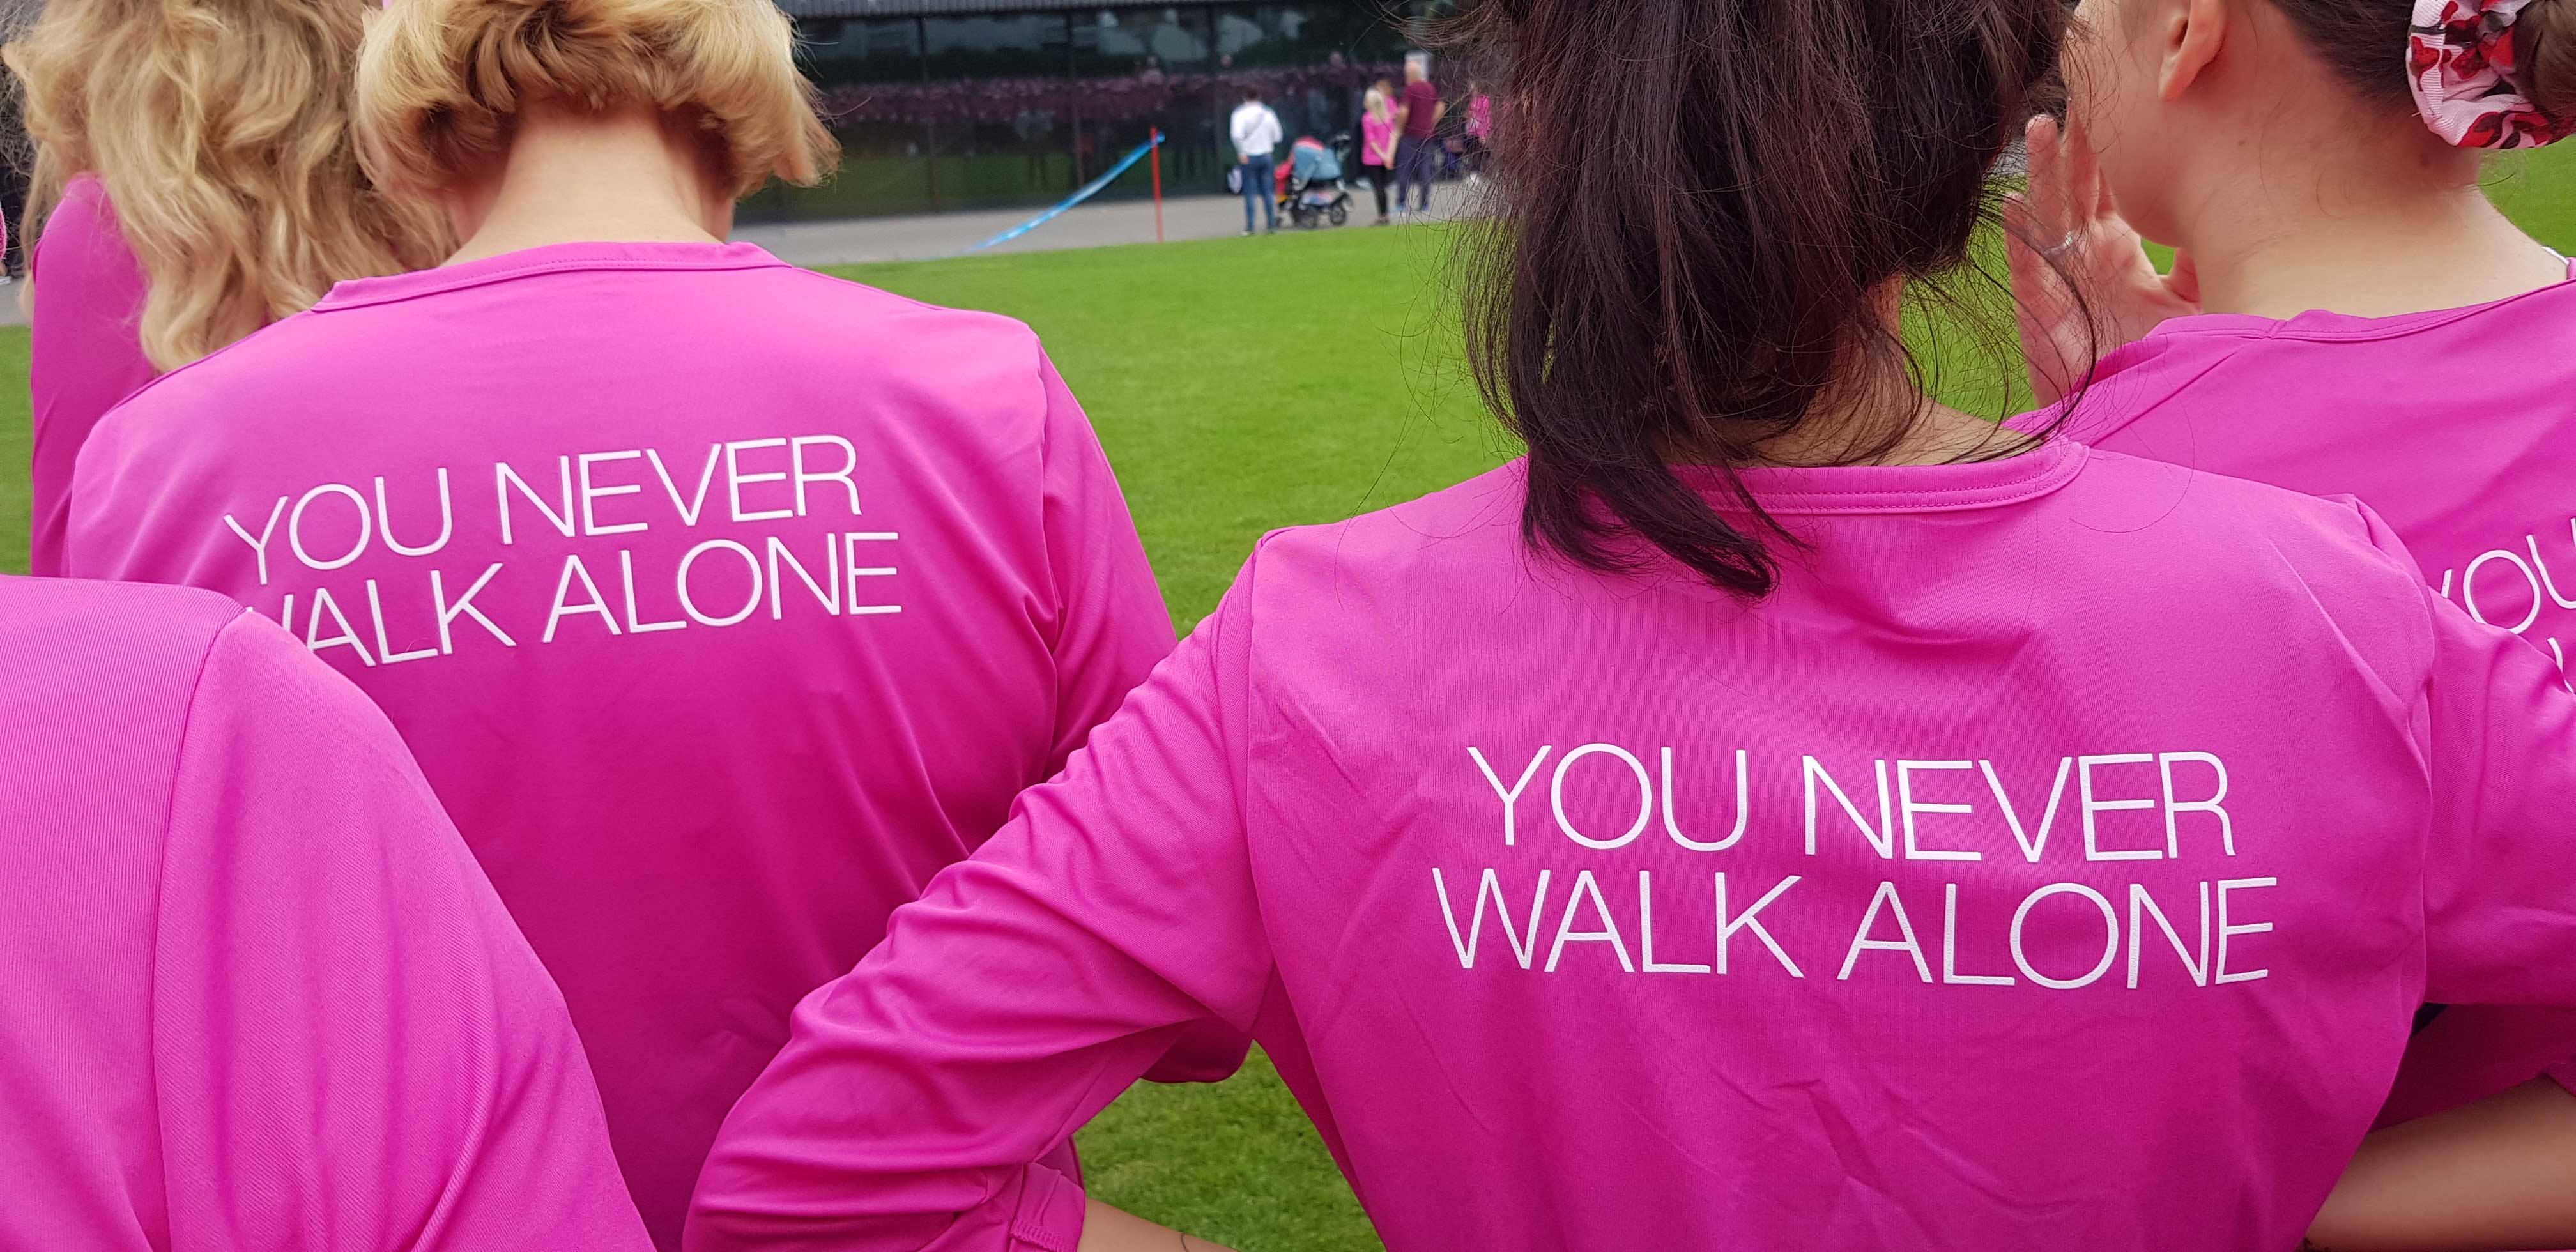 BBVA in its commitment against Breast Cancer